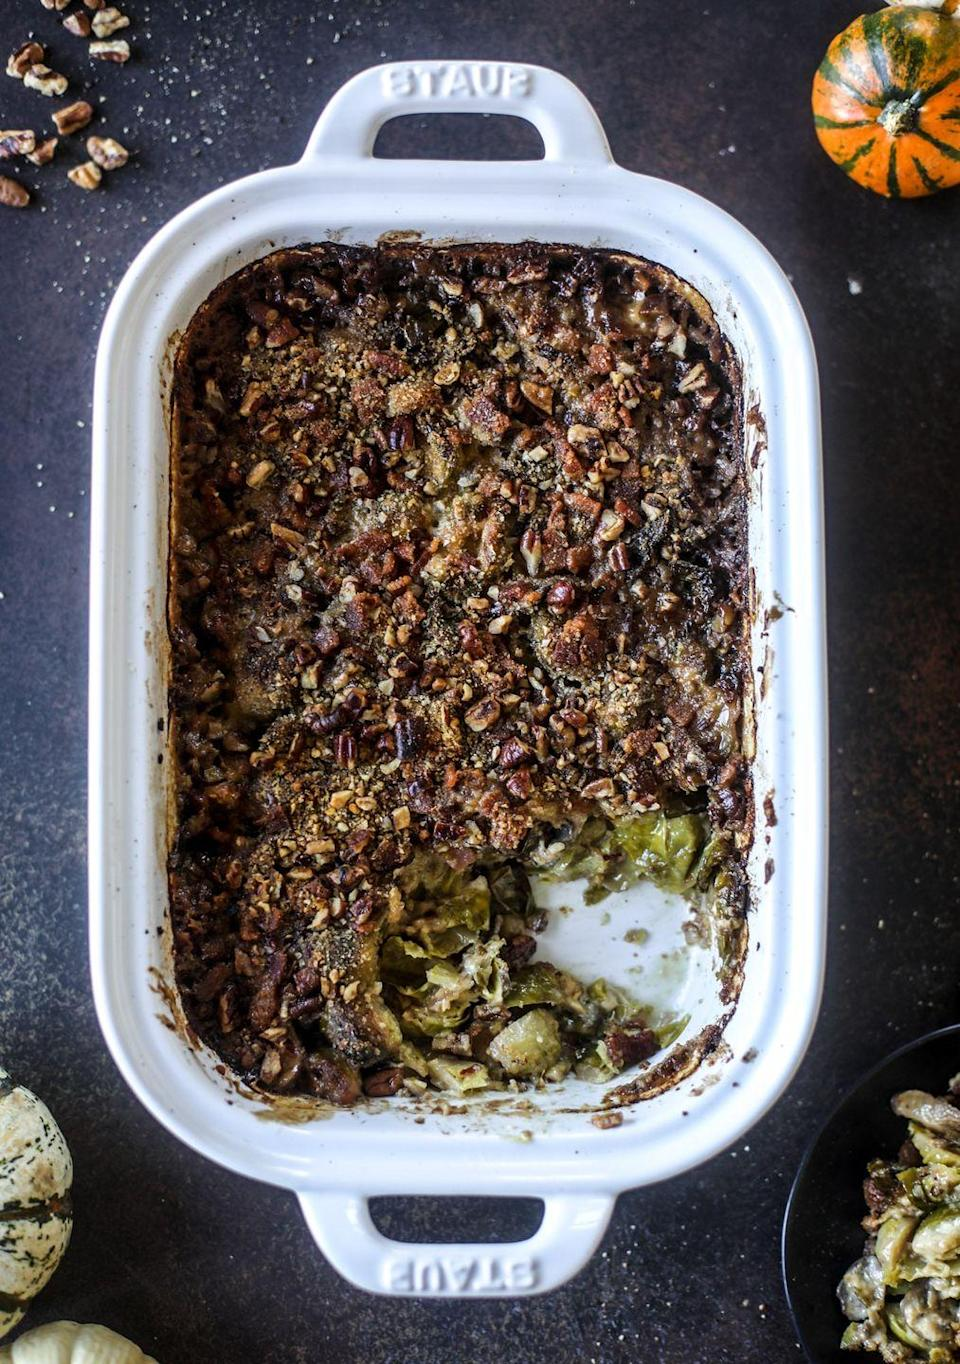 "<p>What <em>can't</em> you make a gratin out of? This Brussels sprouts dish has pancetta and plenty of cheese for a hearty bite.</p><p><strong>Get the recipe at <a href=""https://www.howsweeteats.com/2018/11/brussels-sprouts-gratin/"" rel=""nofollow noopener"" target=""_blank"" data-ylk=""slk:How Sweet Eats"" class=""link rapid-noclick-resp"">How Sweet Eats</a>.</strong></p><p><strong><a class=""link rapid-noclick-resp"" href=""https://go.redirectingat.com?id=74968X1596630&url=https%3A%2F%2Fwww.walmart.com%2Fbrowse%2Fhome%2Fbakeware%2Fthe-pioneer-woman%2F4044_623679_8455465%2FYnJhbmQ6VGhlIFBpb25lZXIgV29tYW4ie&sref=https%3A%2F%2Fwww.thepioneerwoman.com%2Ffood-cooking%2Fmeals-menus%2Fg33251890%2Fbest-thanksgiving-sides%2F"" rel=""nofollow noopener"" target=""_blank"" data-ylk=""slk:SHOP BAKEWARE"">SHOP BAKEWARE</a></strong></p>"